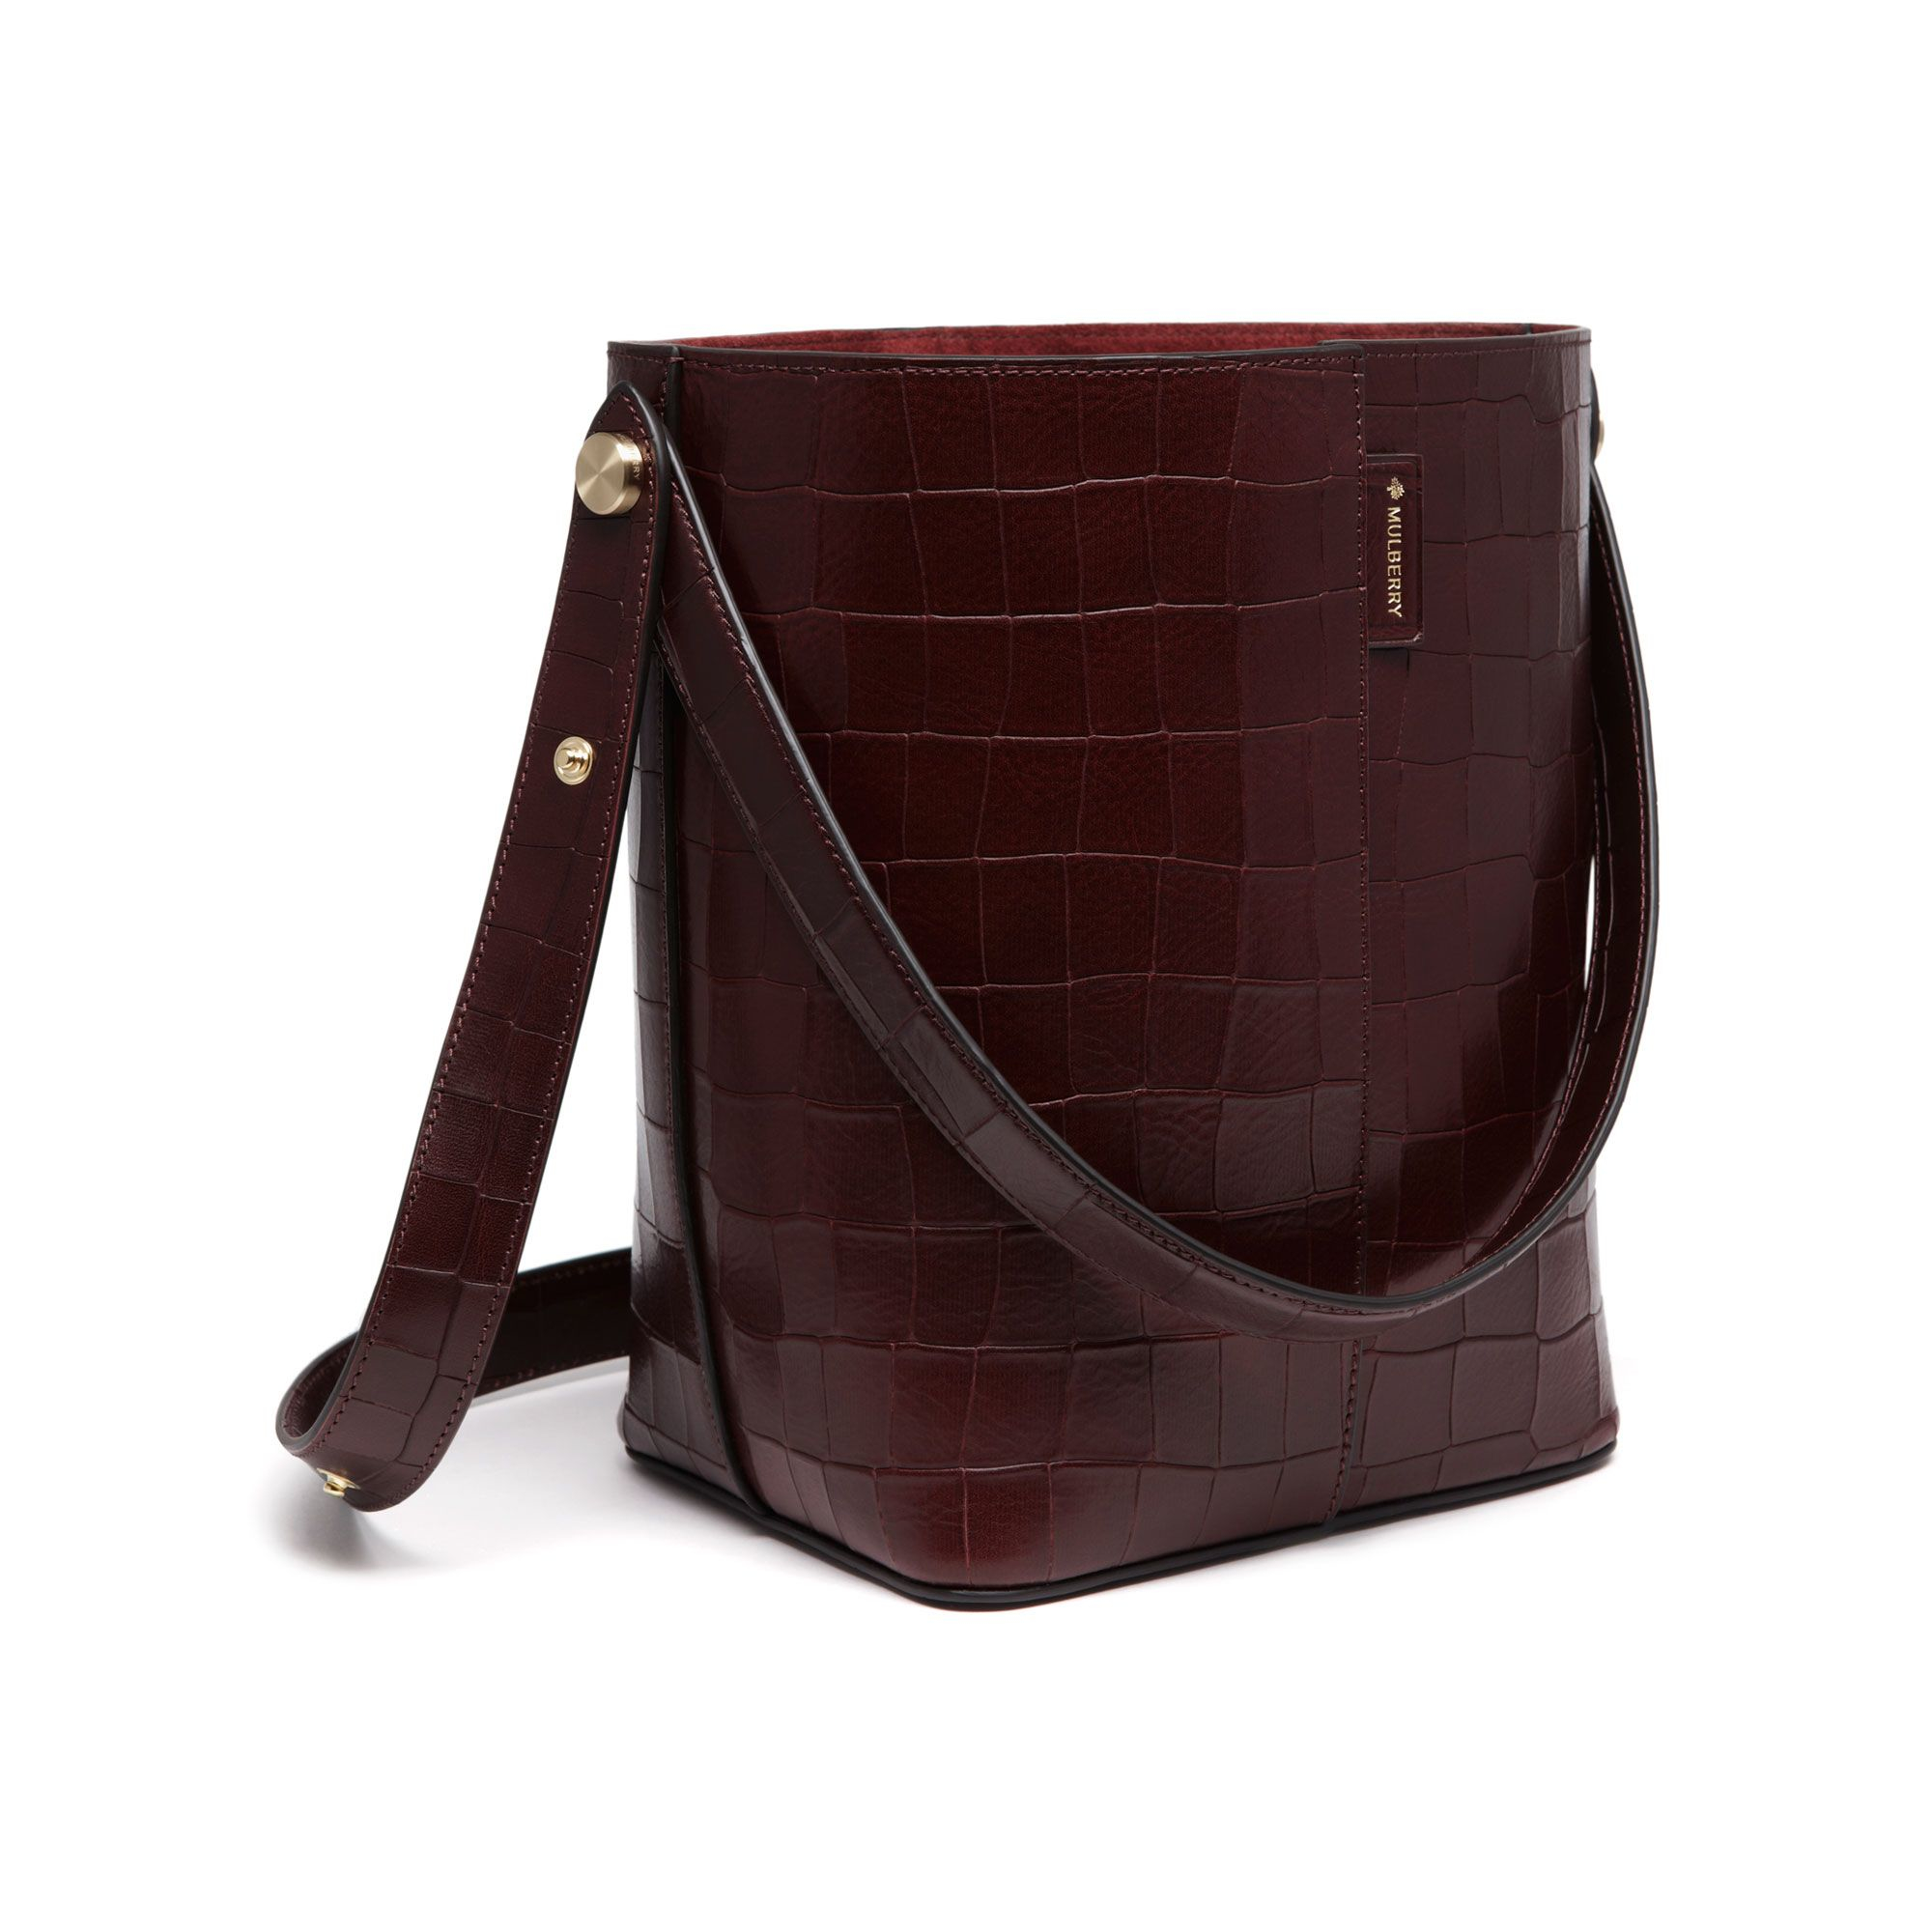 35b11e2d56 Canada Mulberry Bayswater Tote Oxblood 652d9 B8871. Lyst Mulberry Bayswater  Crocodile Embossed ...